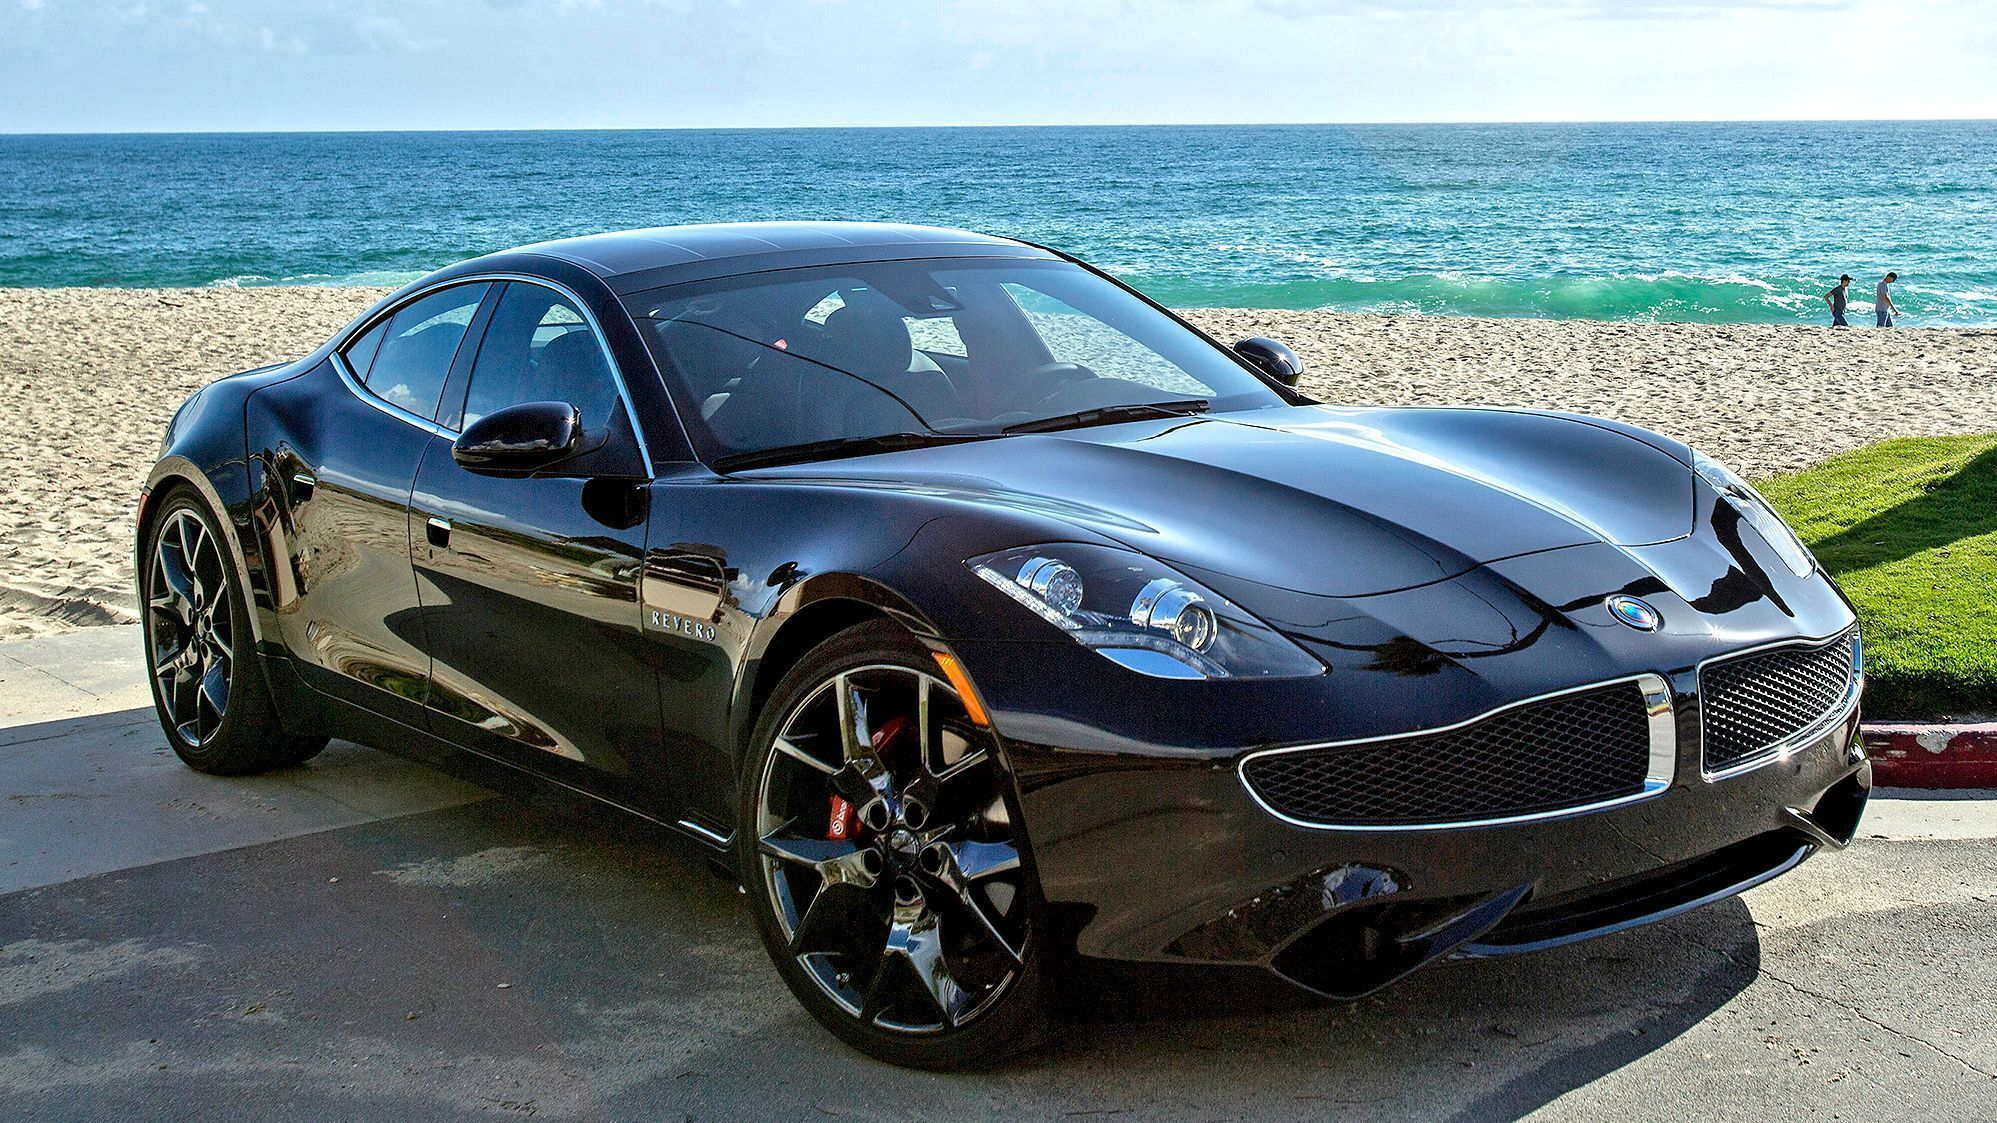 2018 karma revero is an 39 ultra luxury 39 hybrid la times. Black Bedroom Furniture Sets. Home Design Ideas